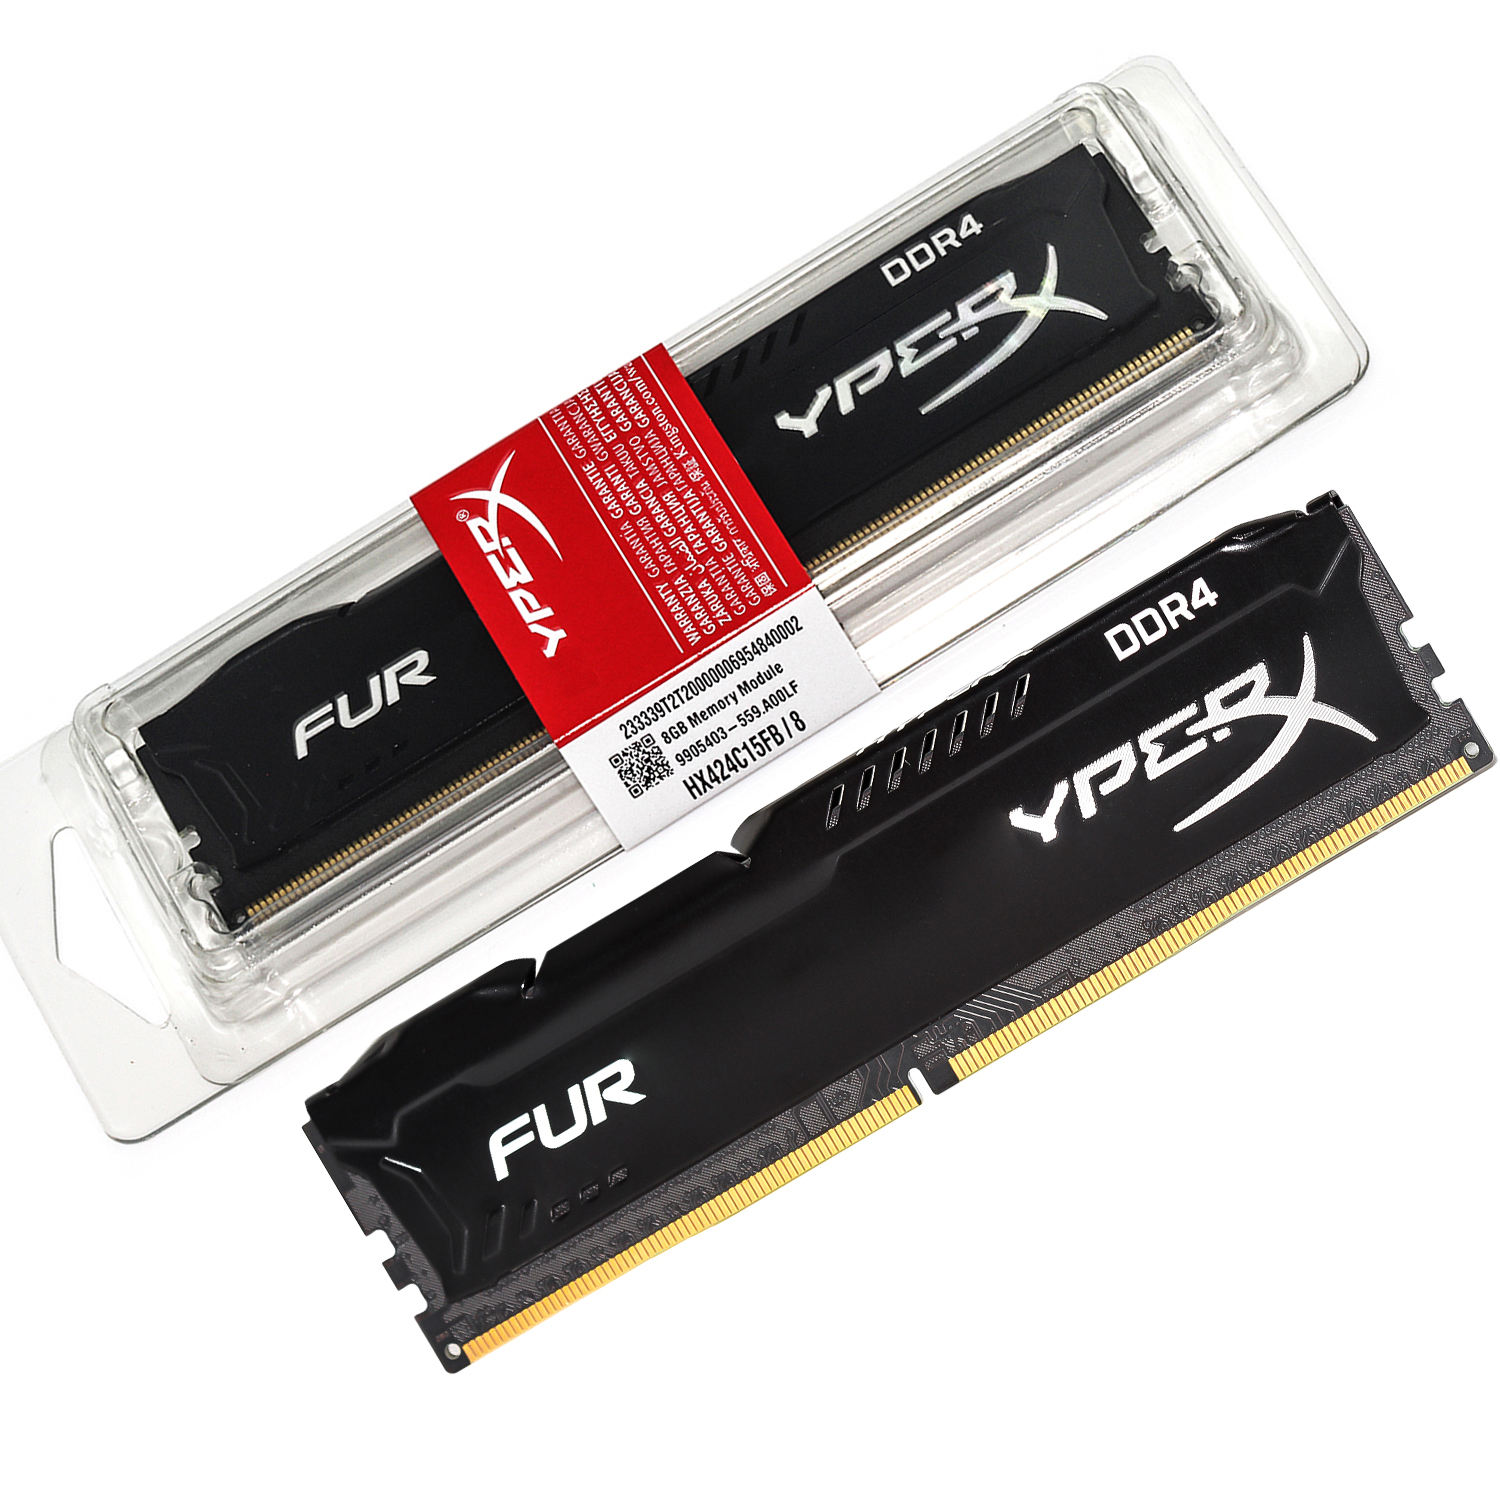 15 Years Factory HX Ram Desktop Ddr4 8gb 2400mhz Memory Modules 2400mhz 288pin All Compatible Heatsink Used HX ram